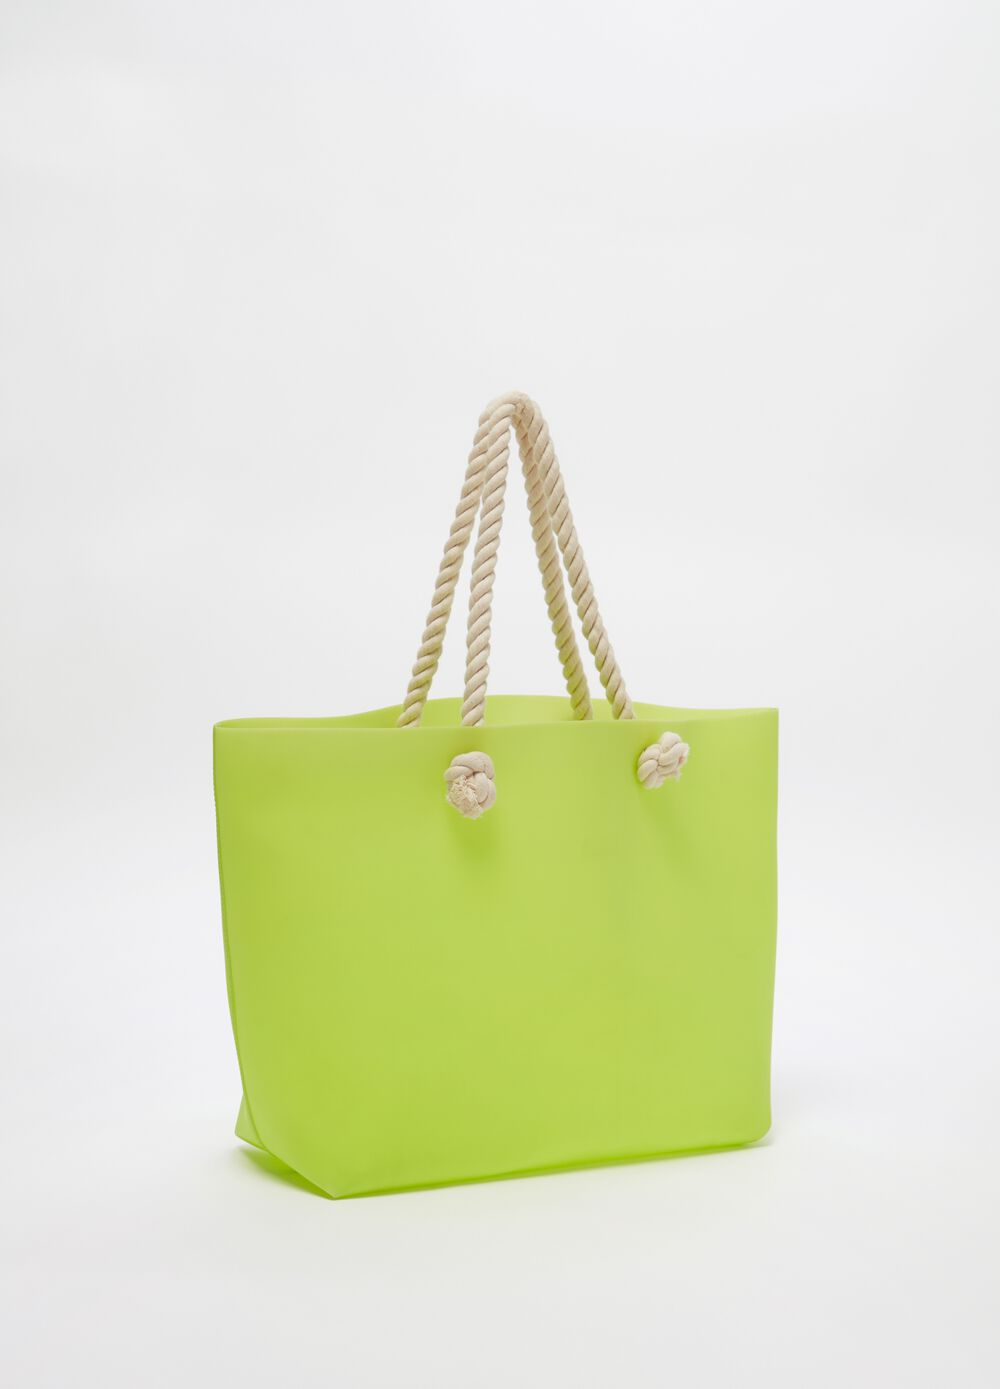 Beach bag with woven handles